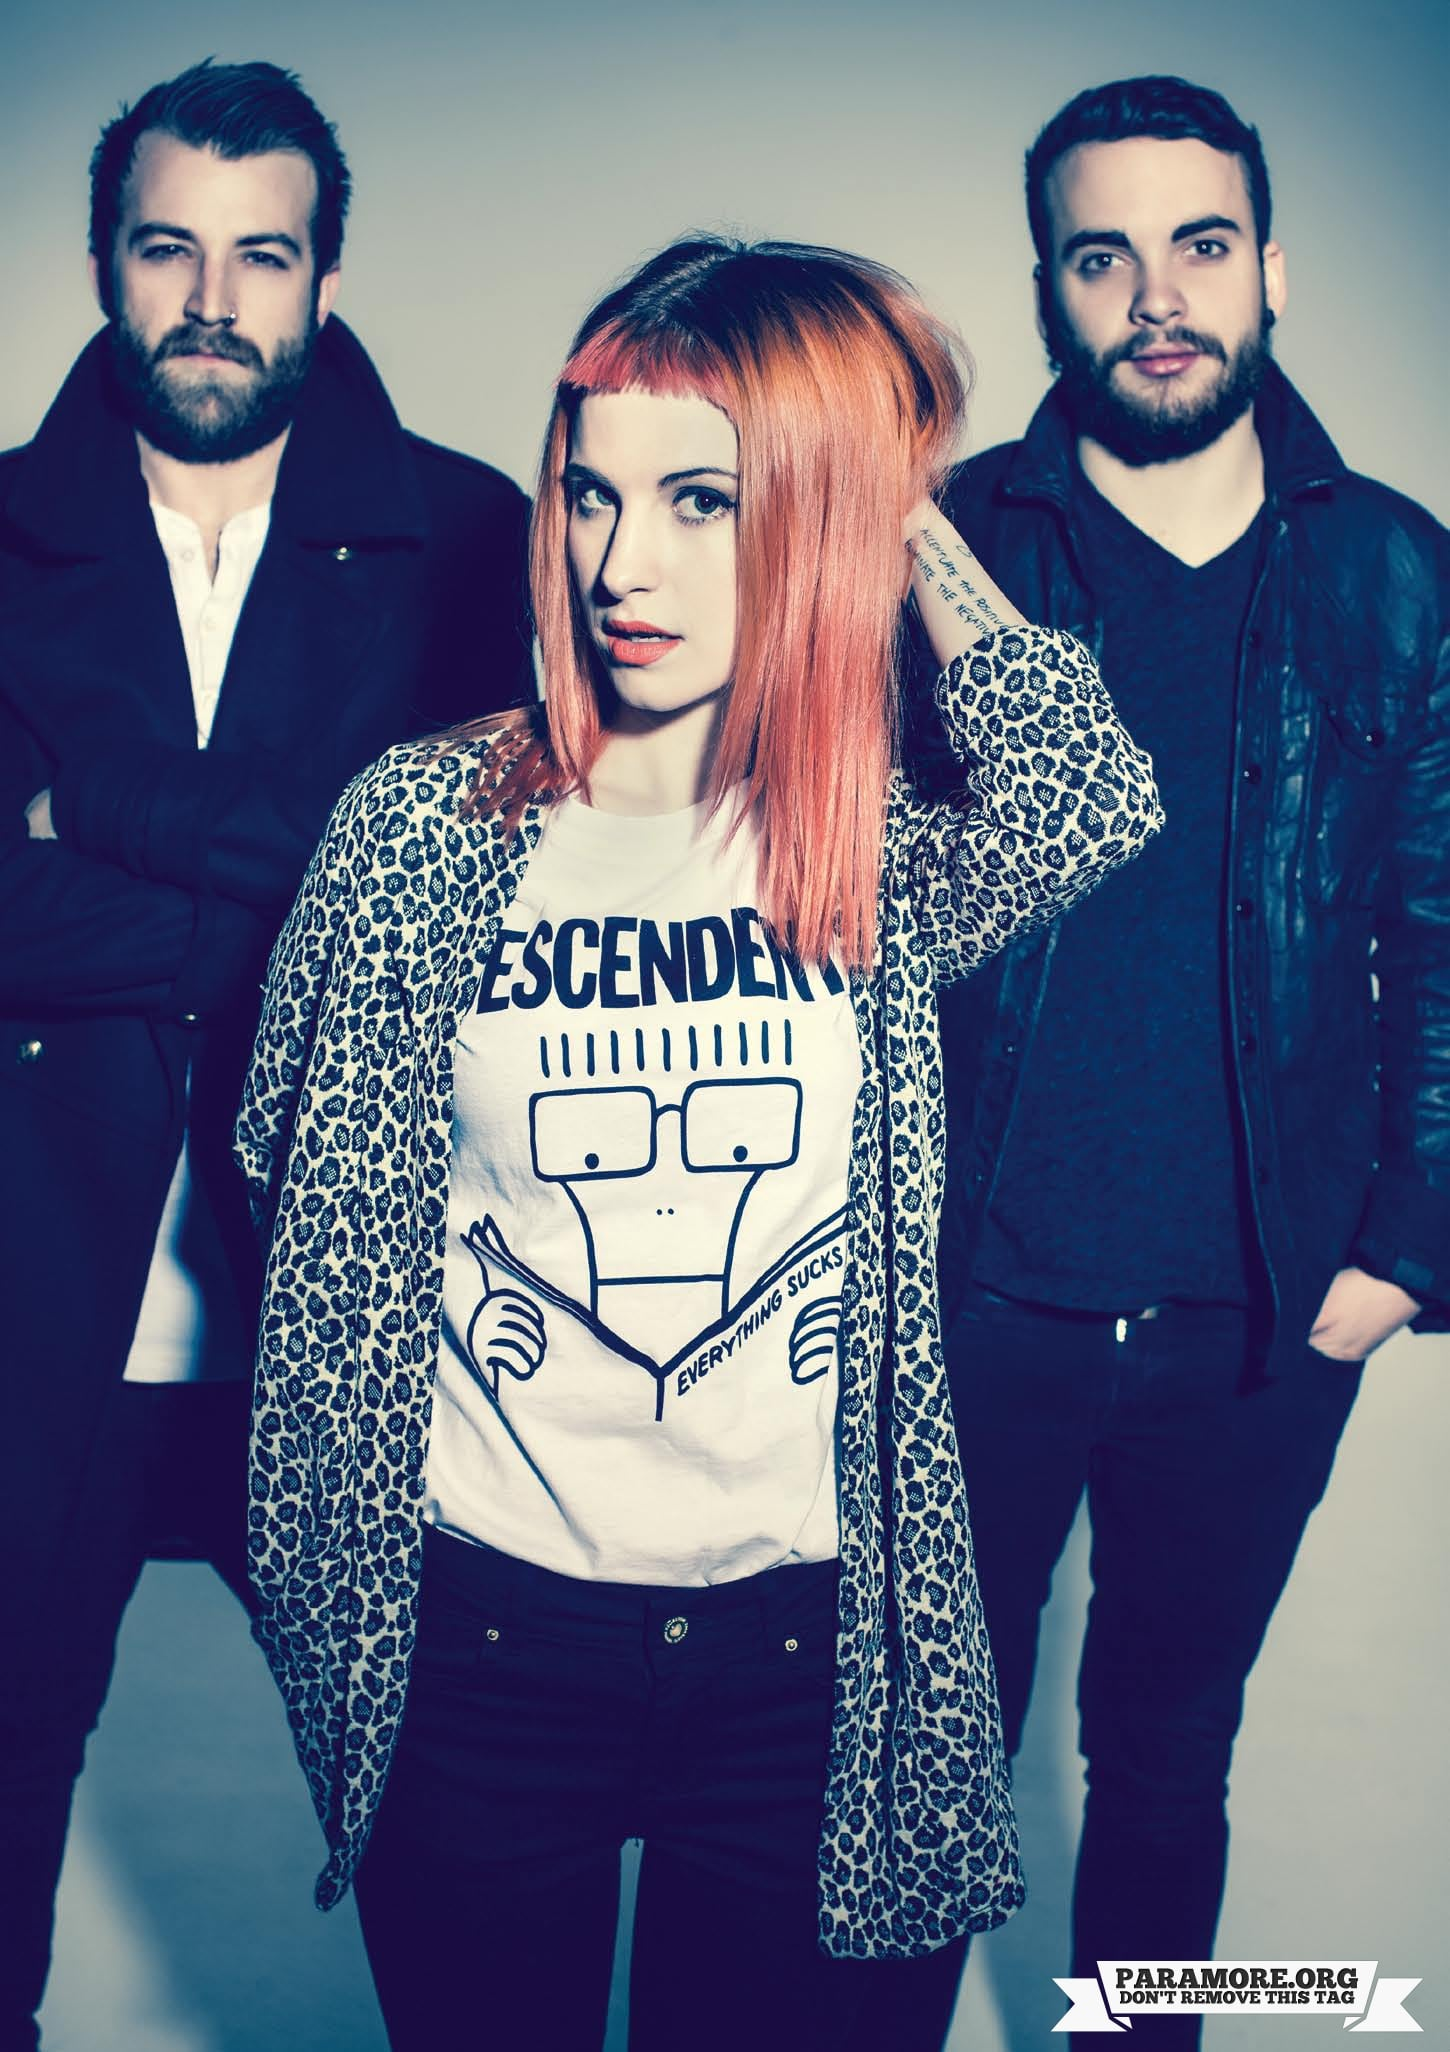 Paramore For mobile